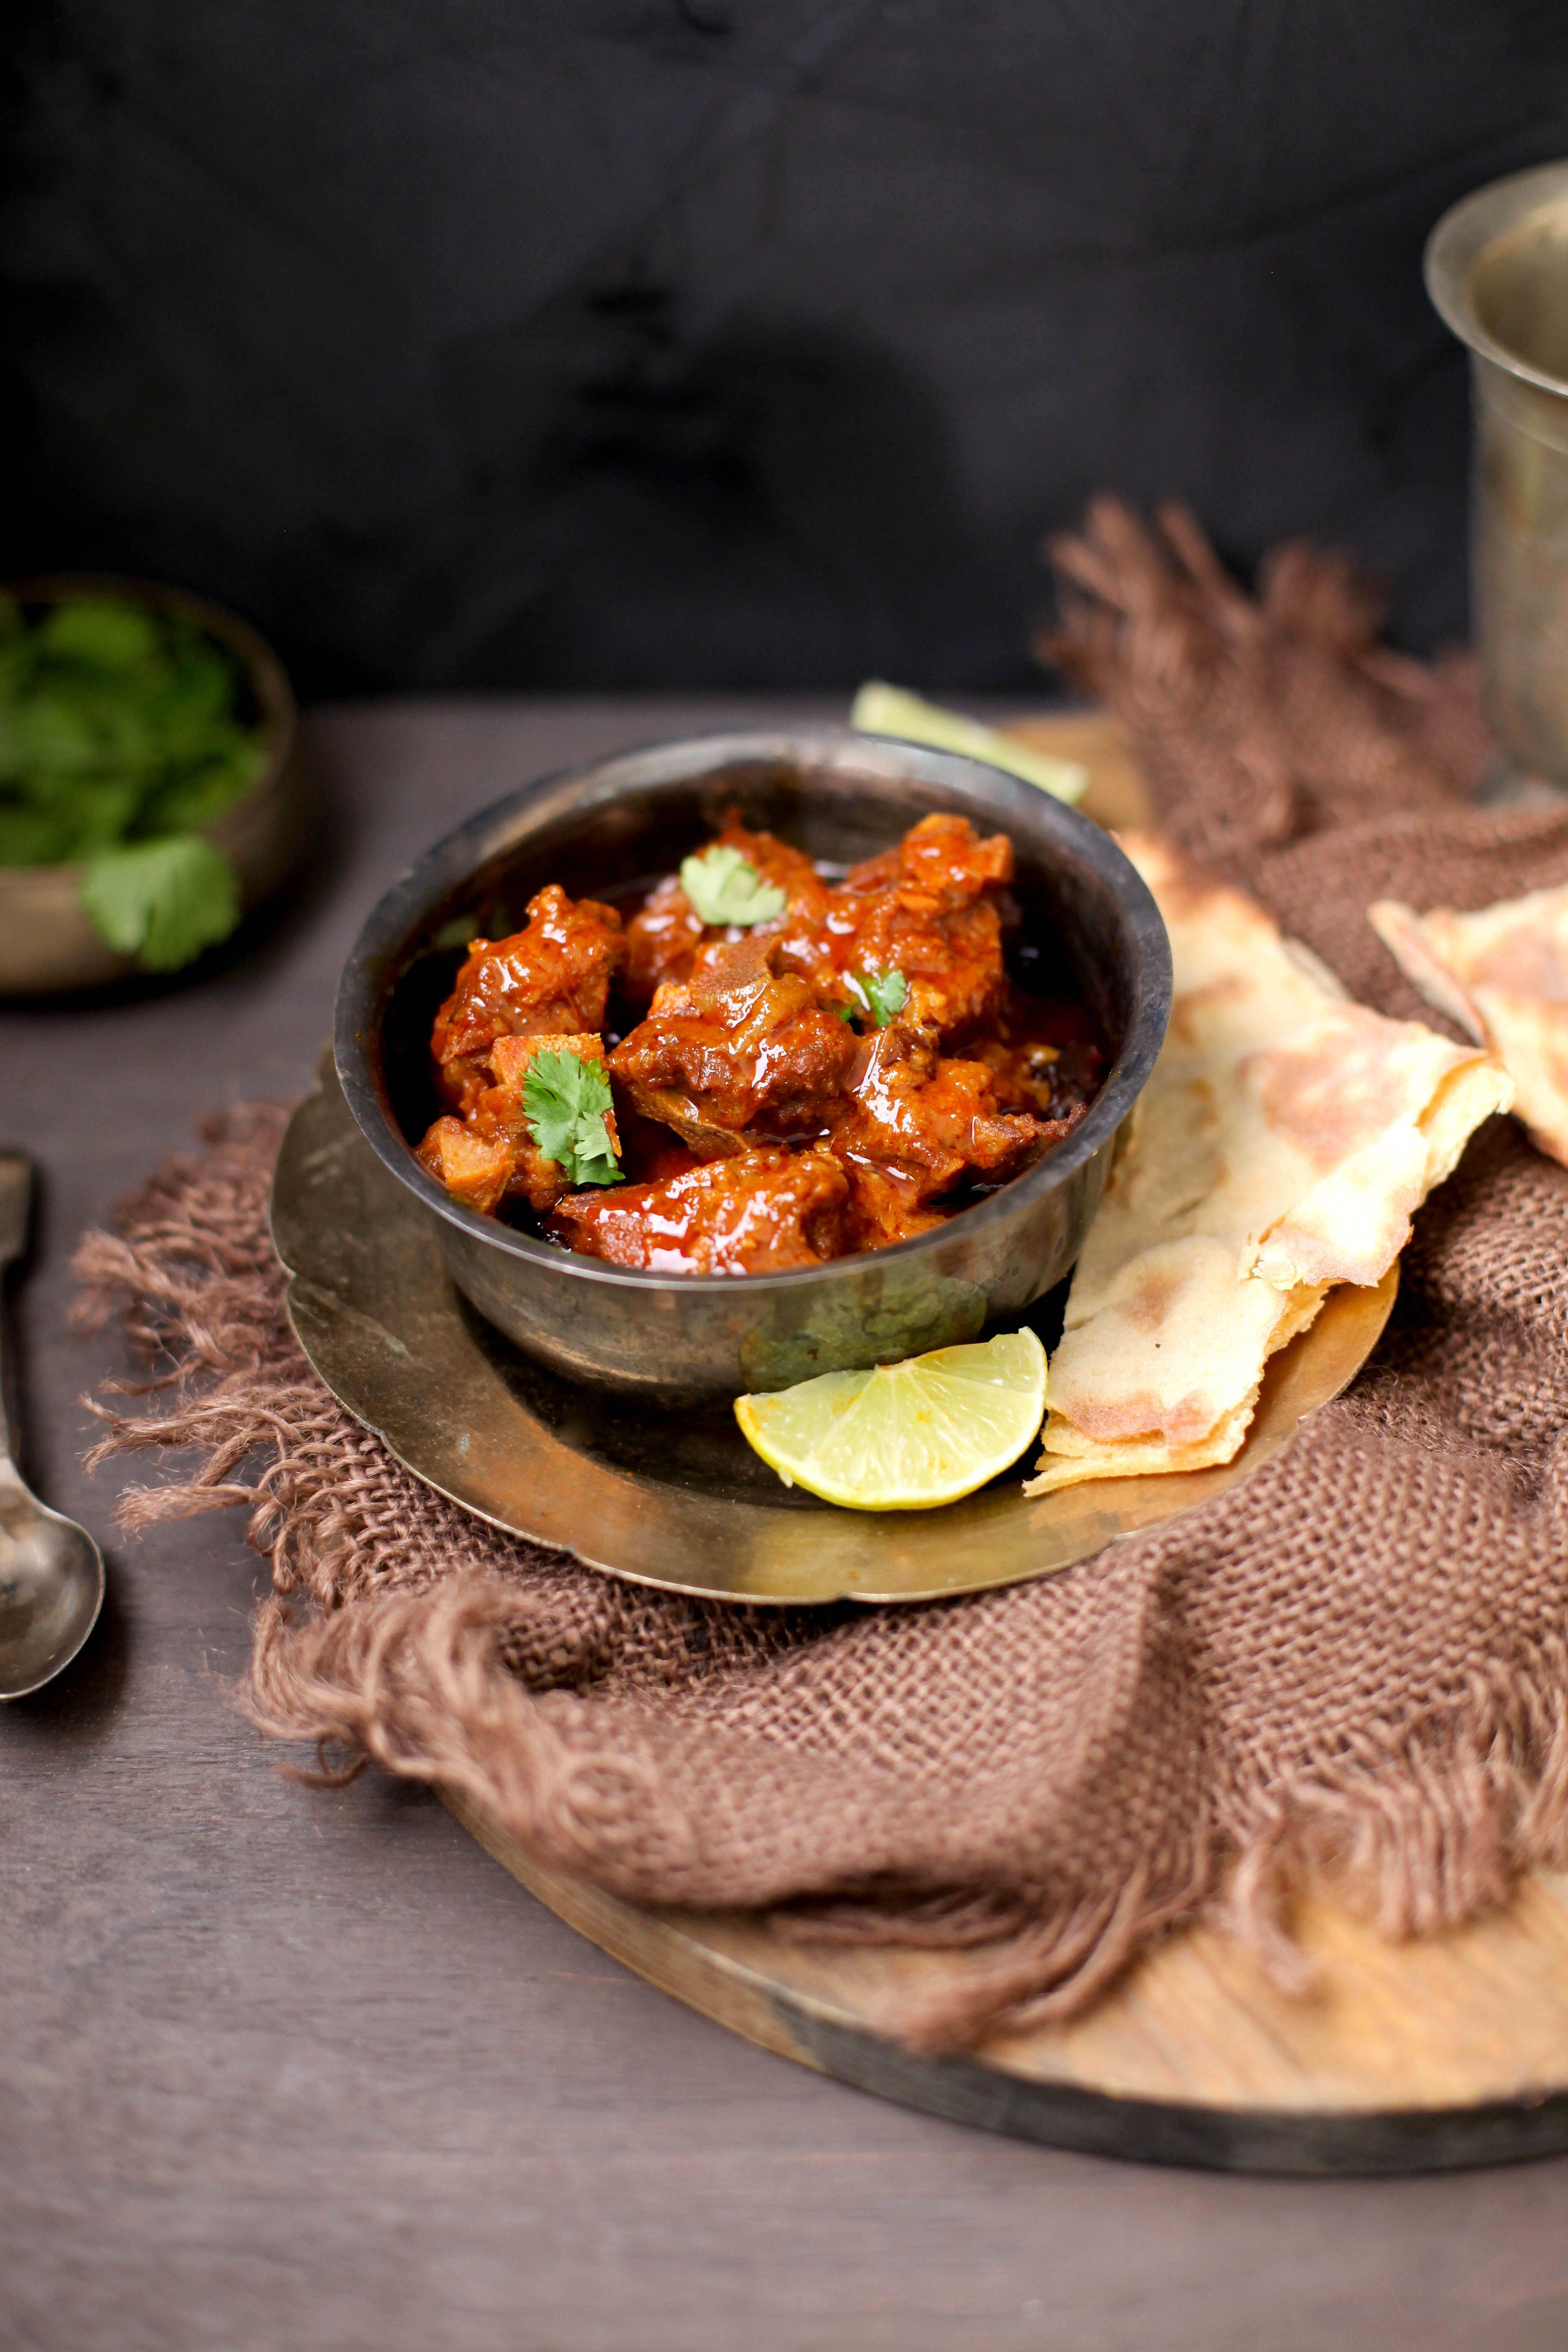 Laal Maas - Rajasthani Red Mutton Curry